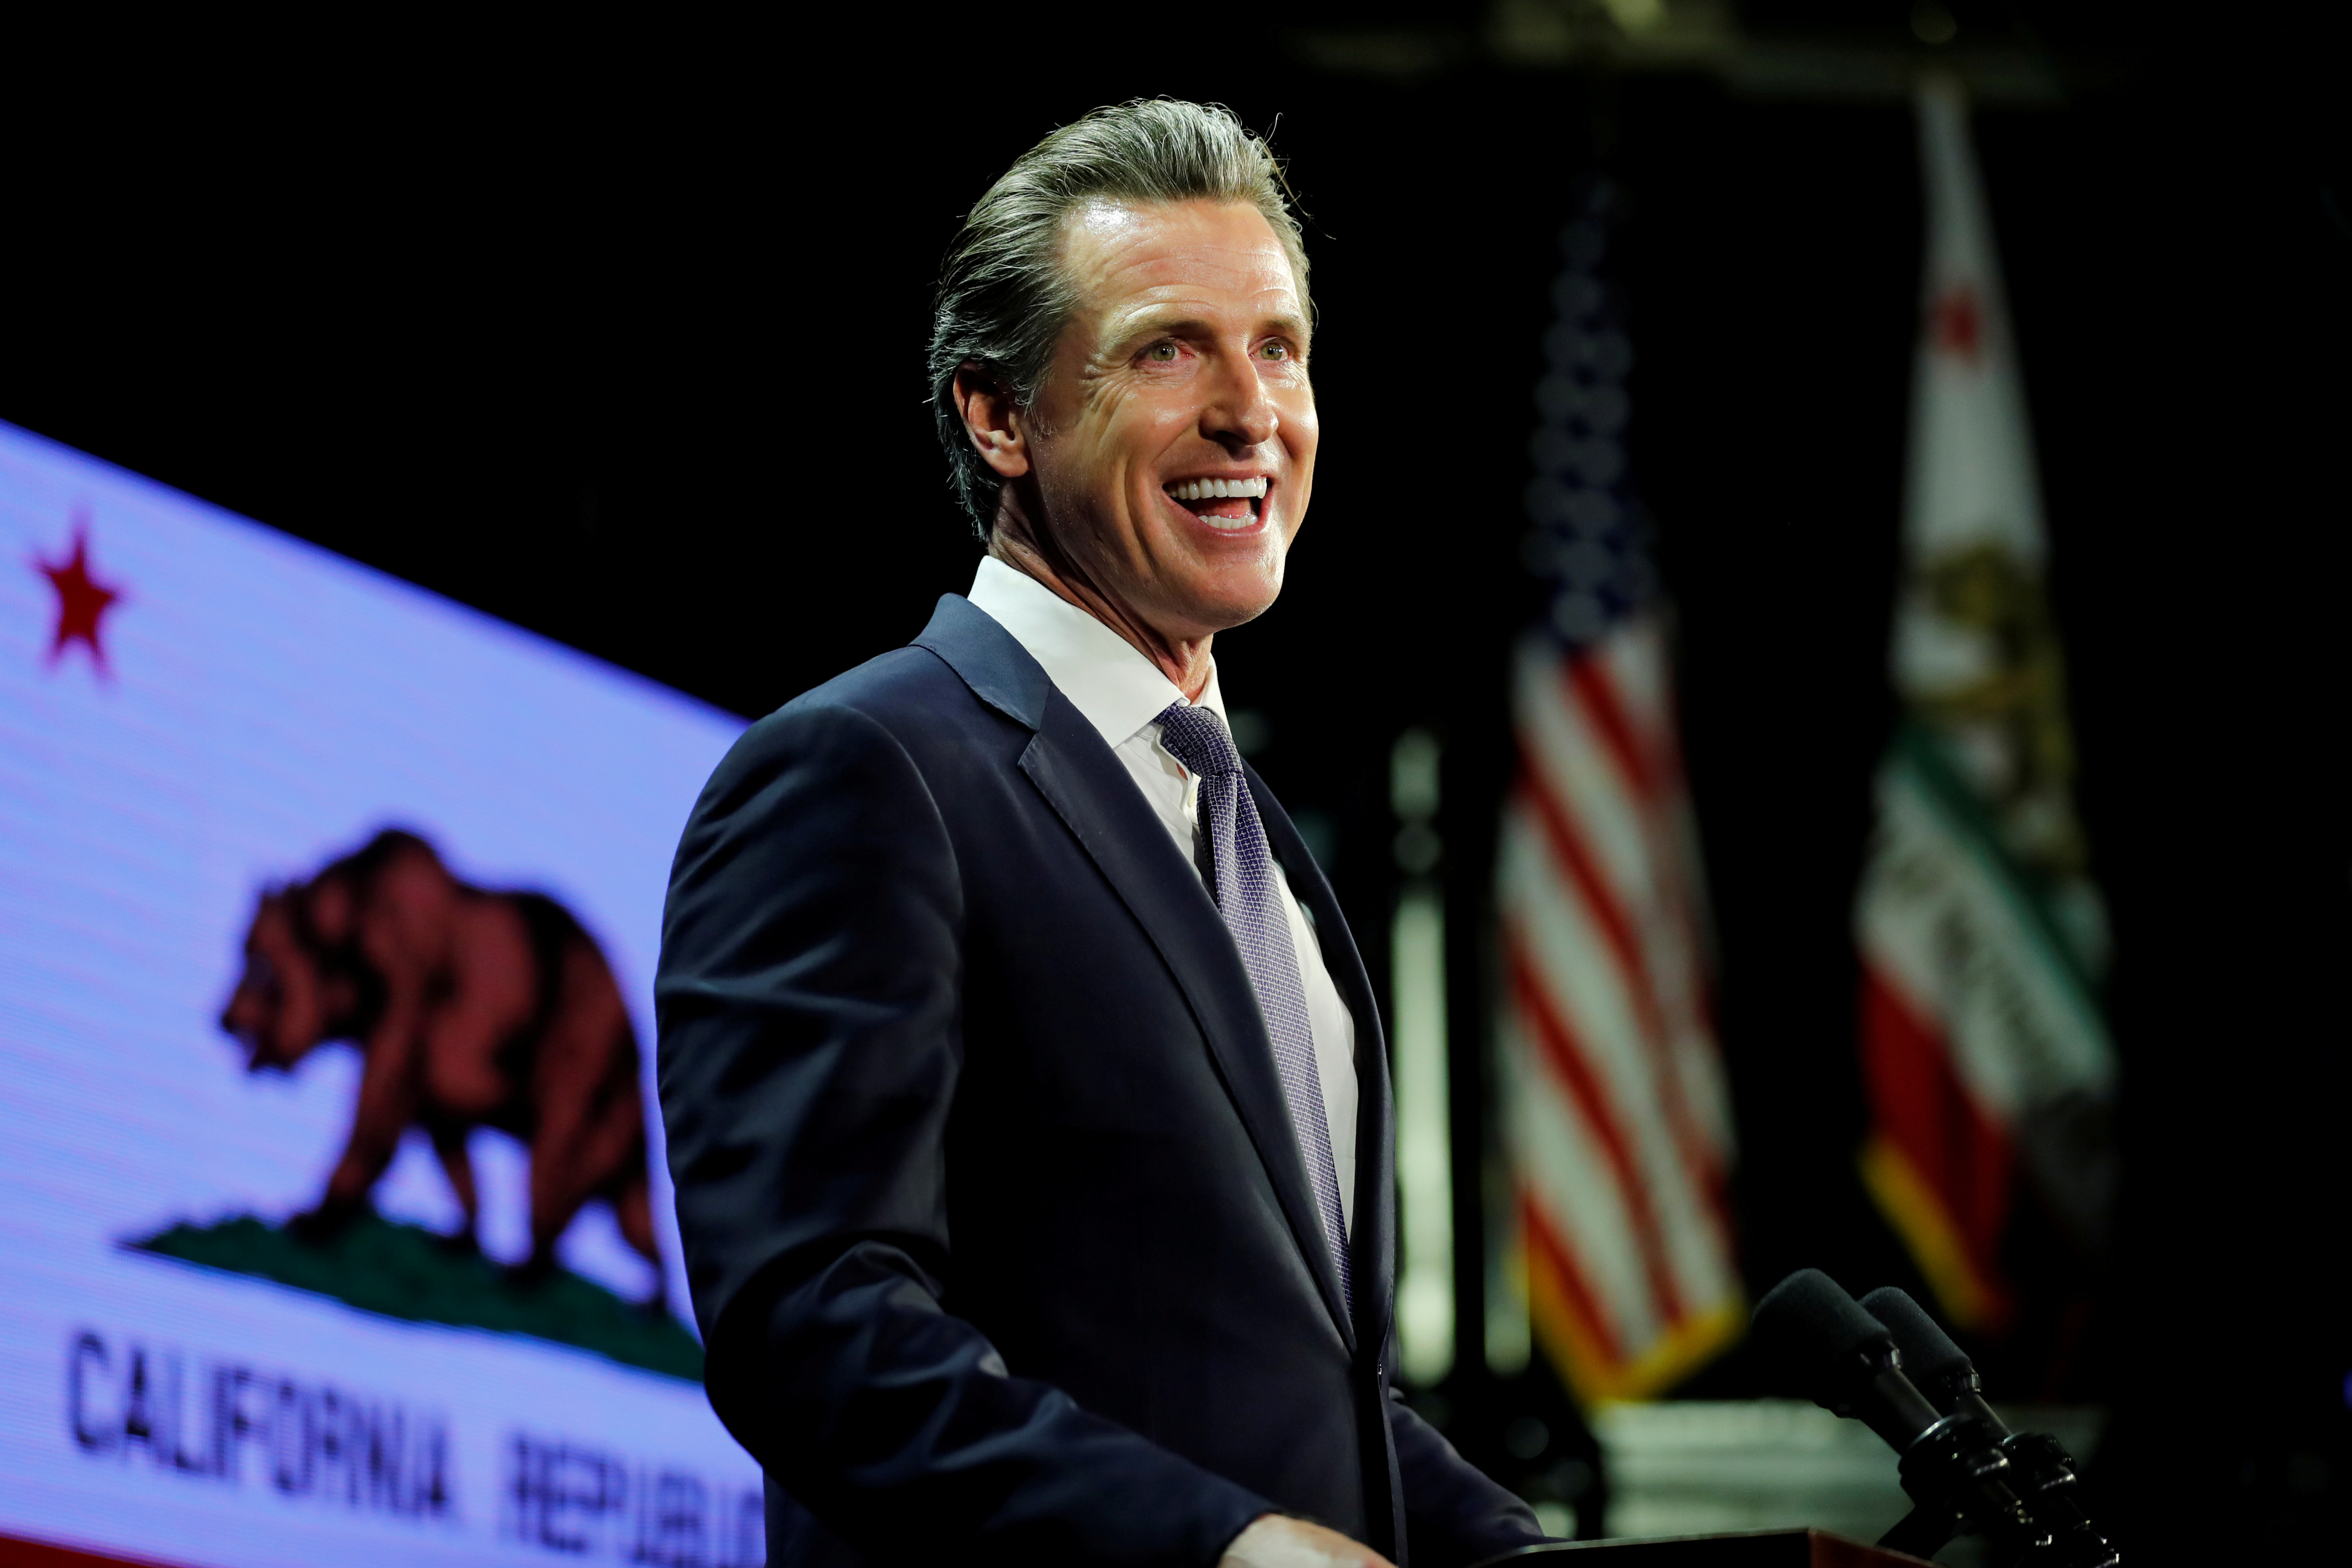 Democratic gubernatorial candidate Gavin Newsom elected governor of California